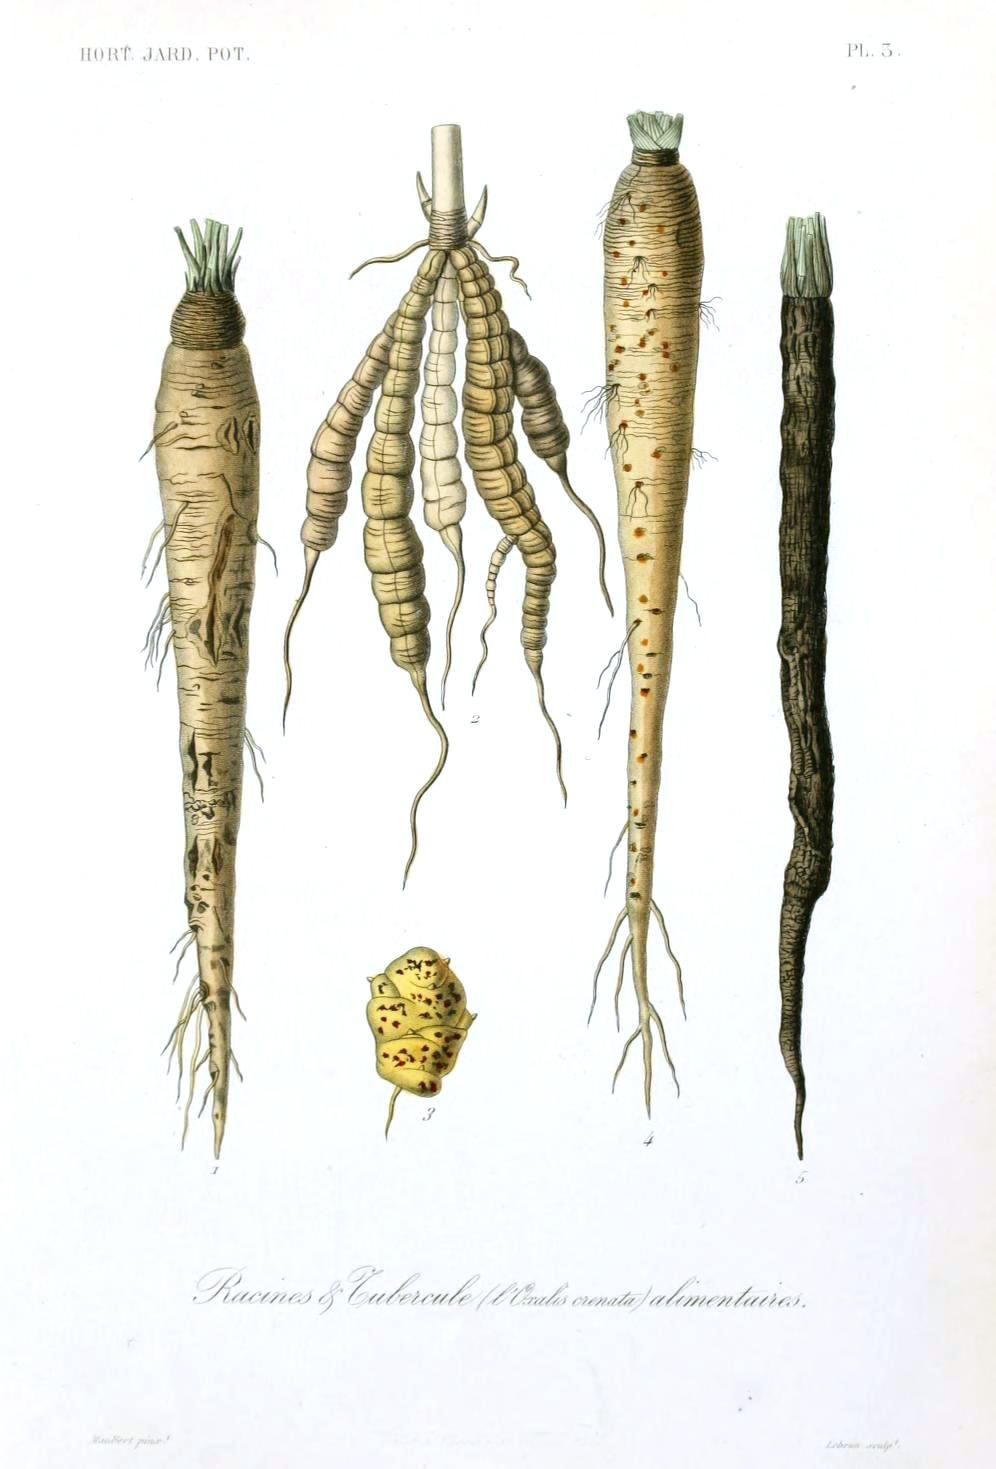 Drawn vegetable root vegetable Healthy Are Times Vegetables Roots